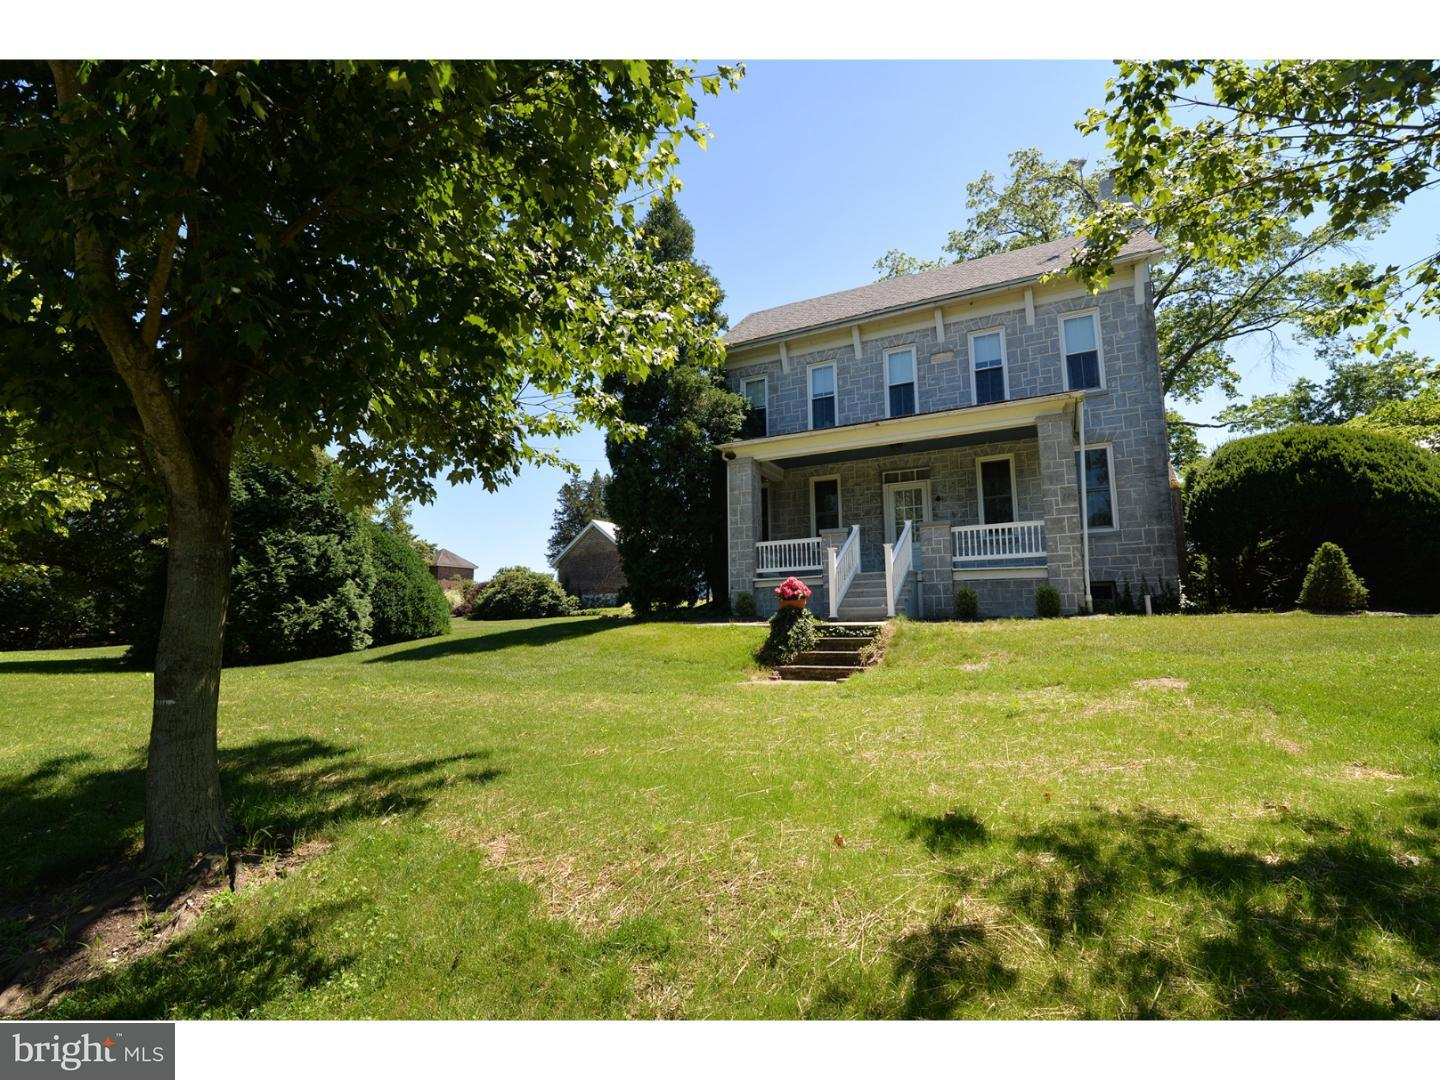 158 CASSEL RD, READING - Listed at $2,000, READING